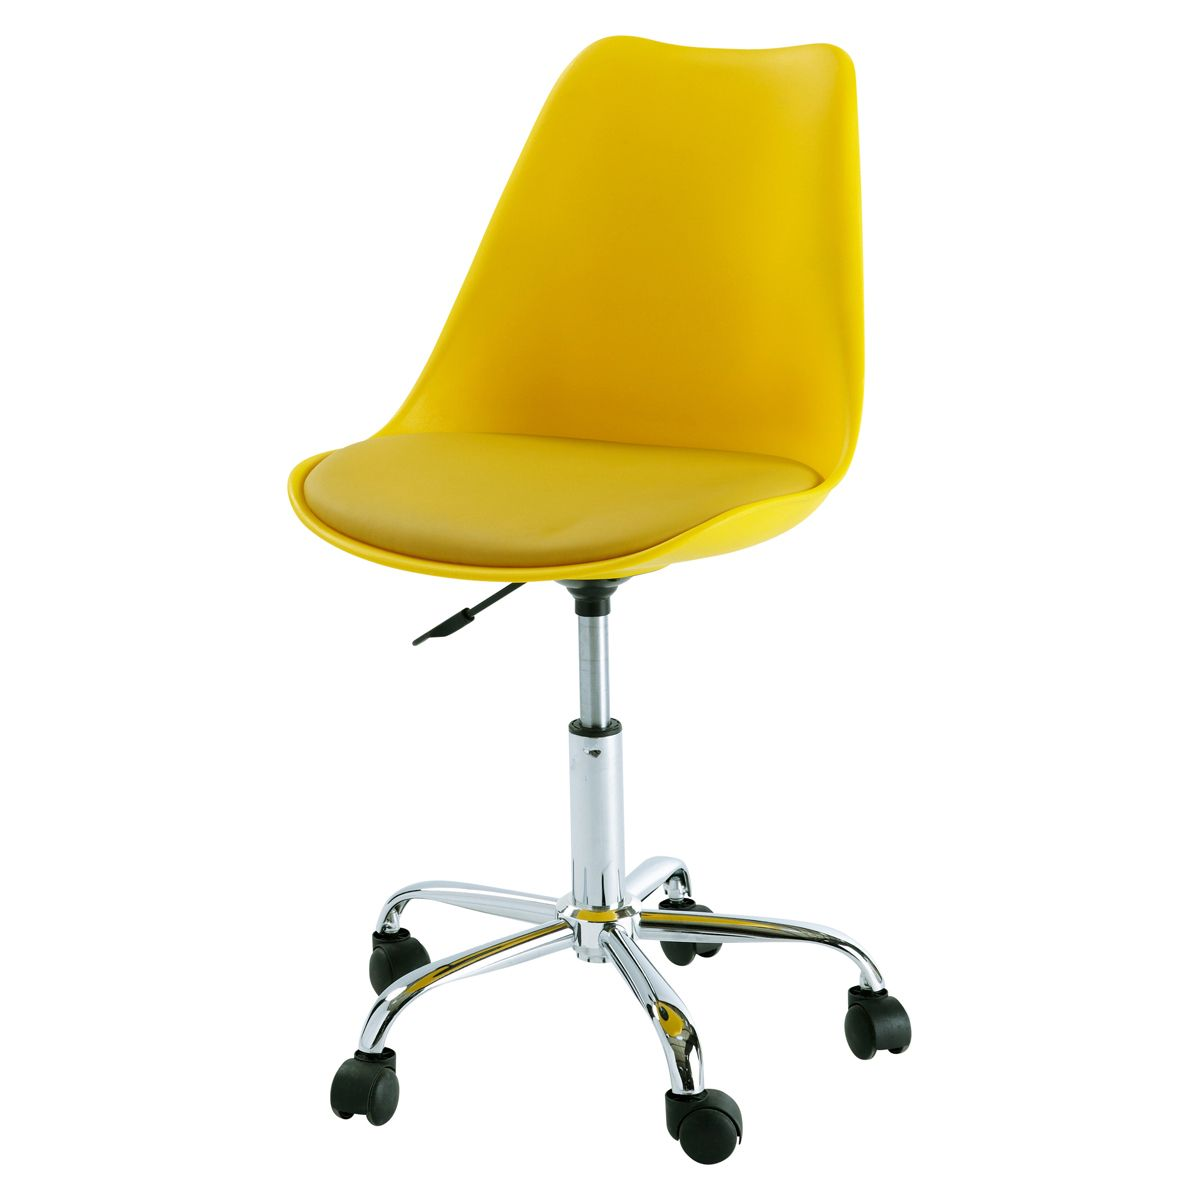 cool Fresh Yellow Office Chair 66 On Interior Decor Home with